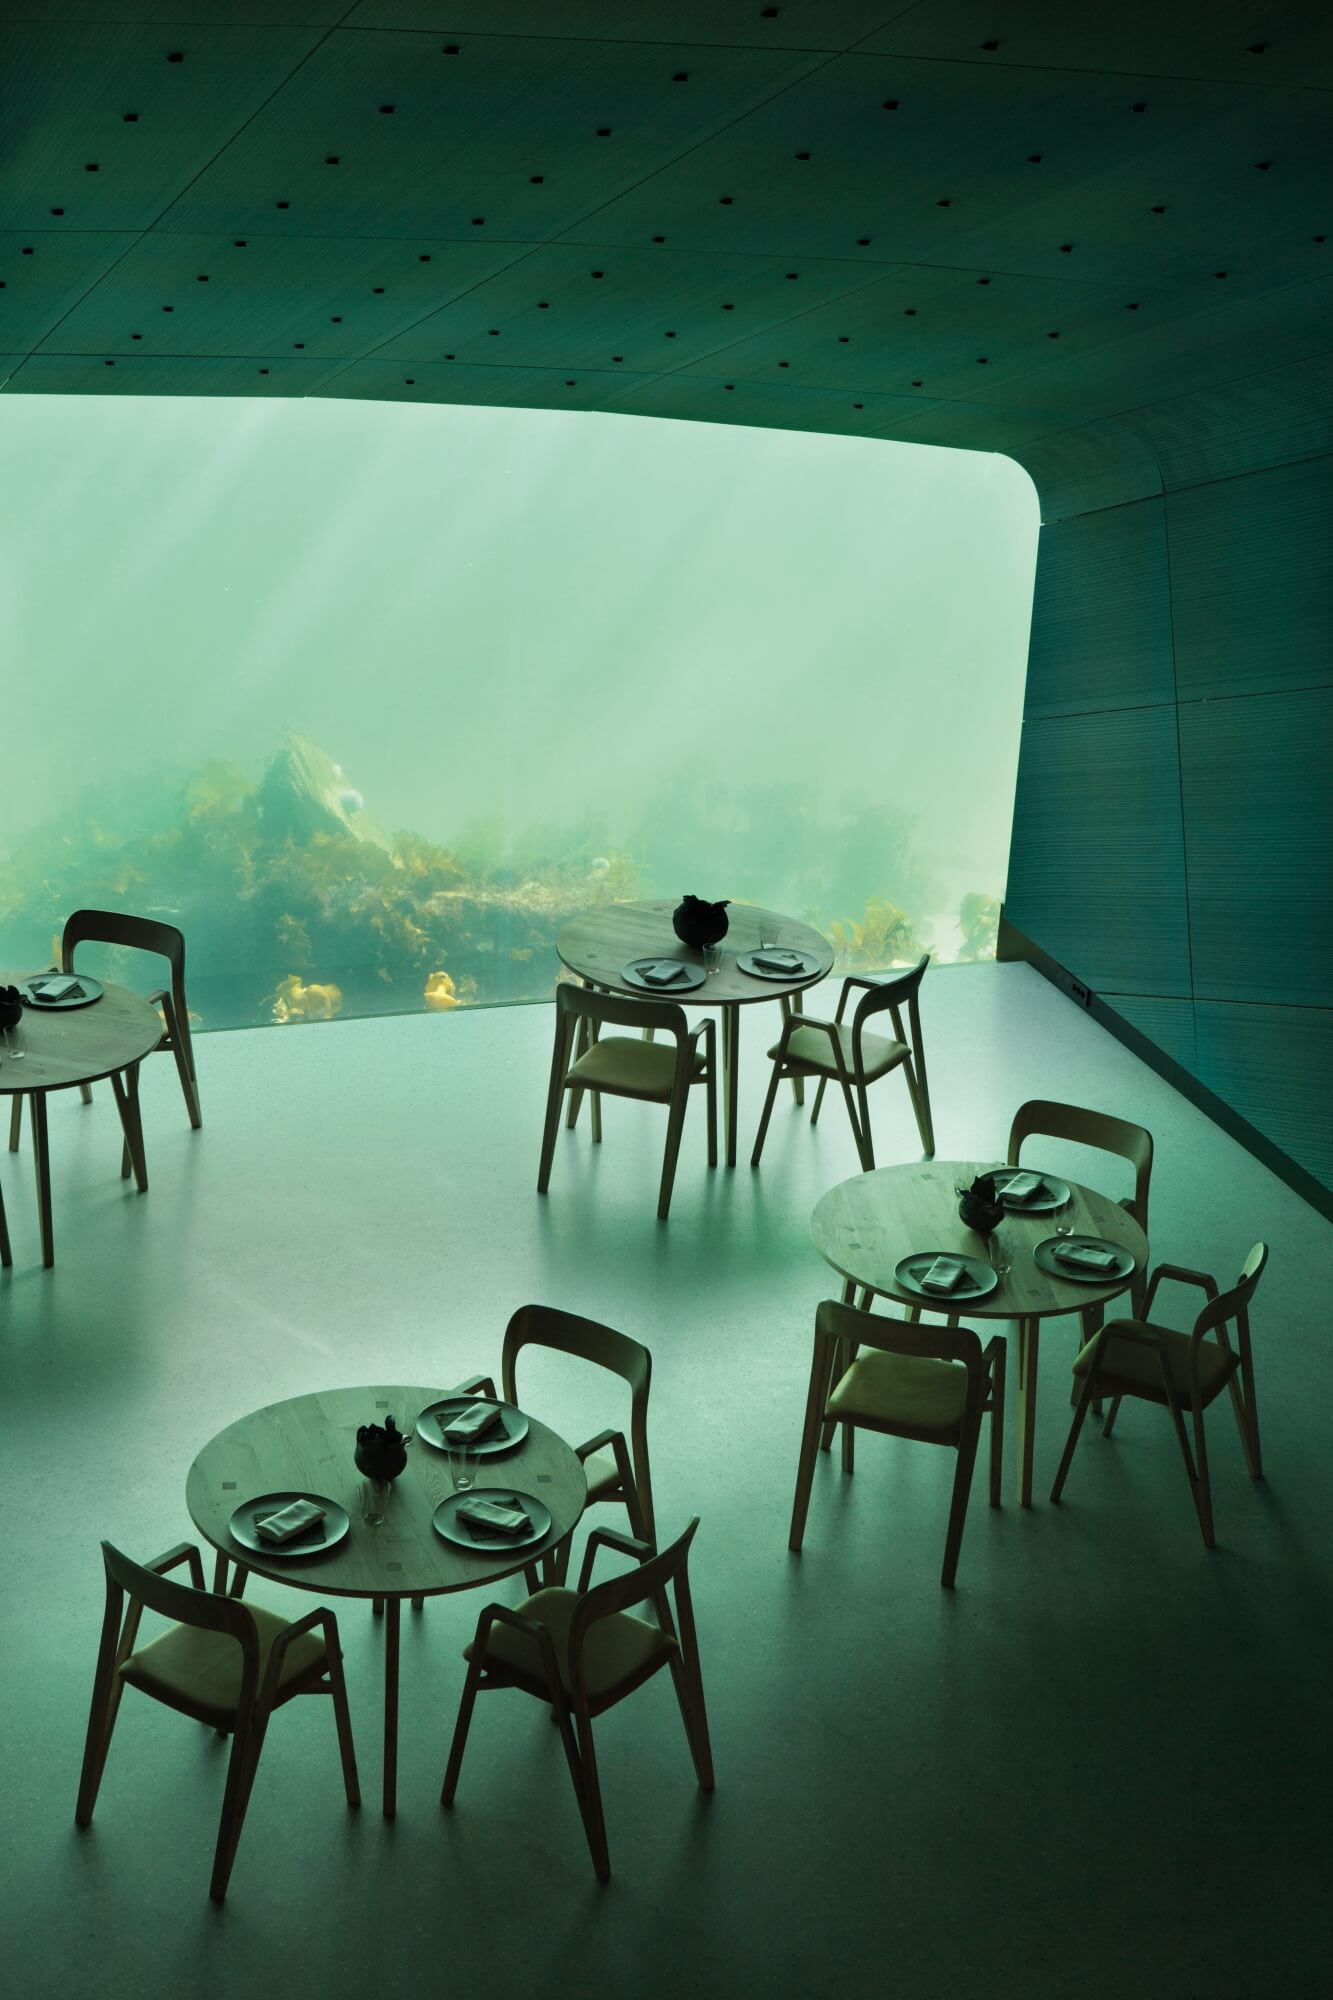 A dining room with a large glass window underwater looking into the lake.